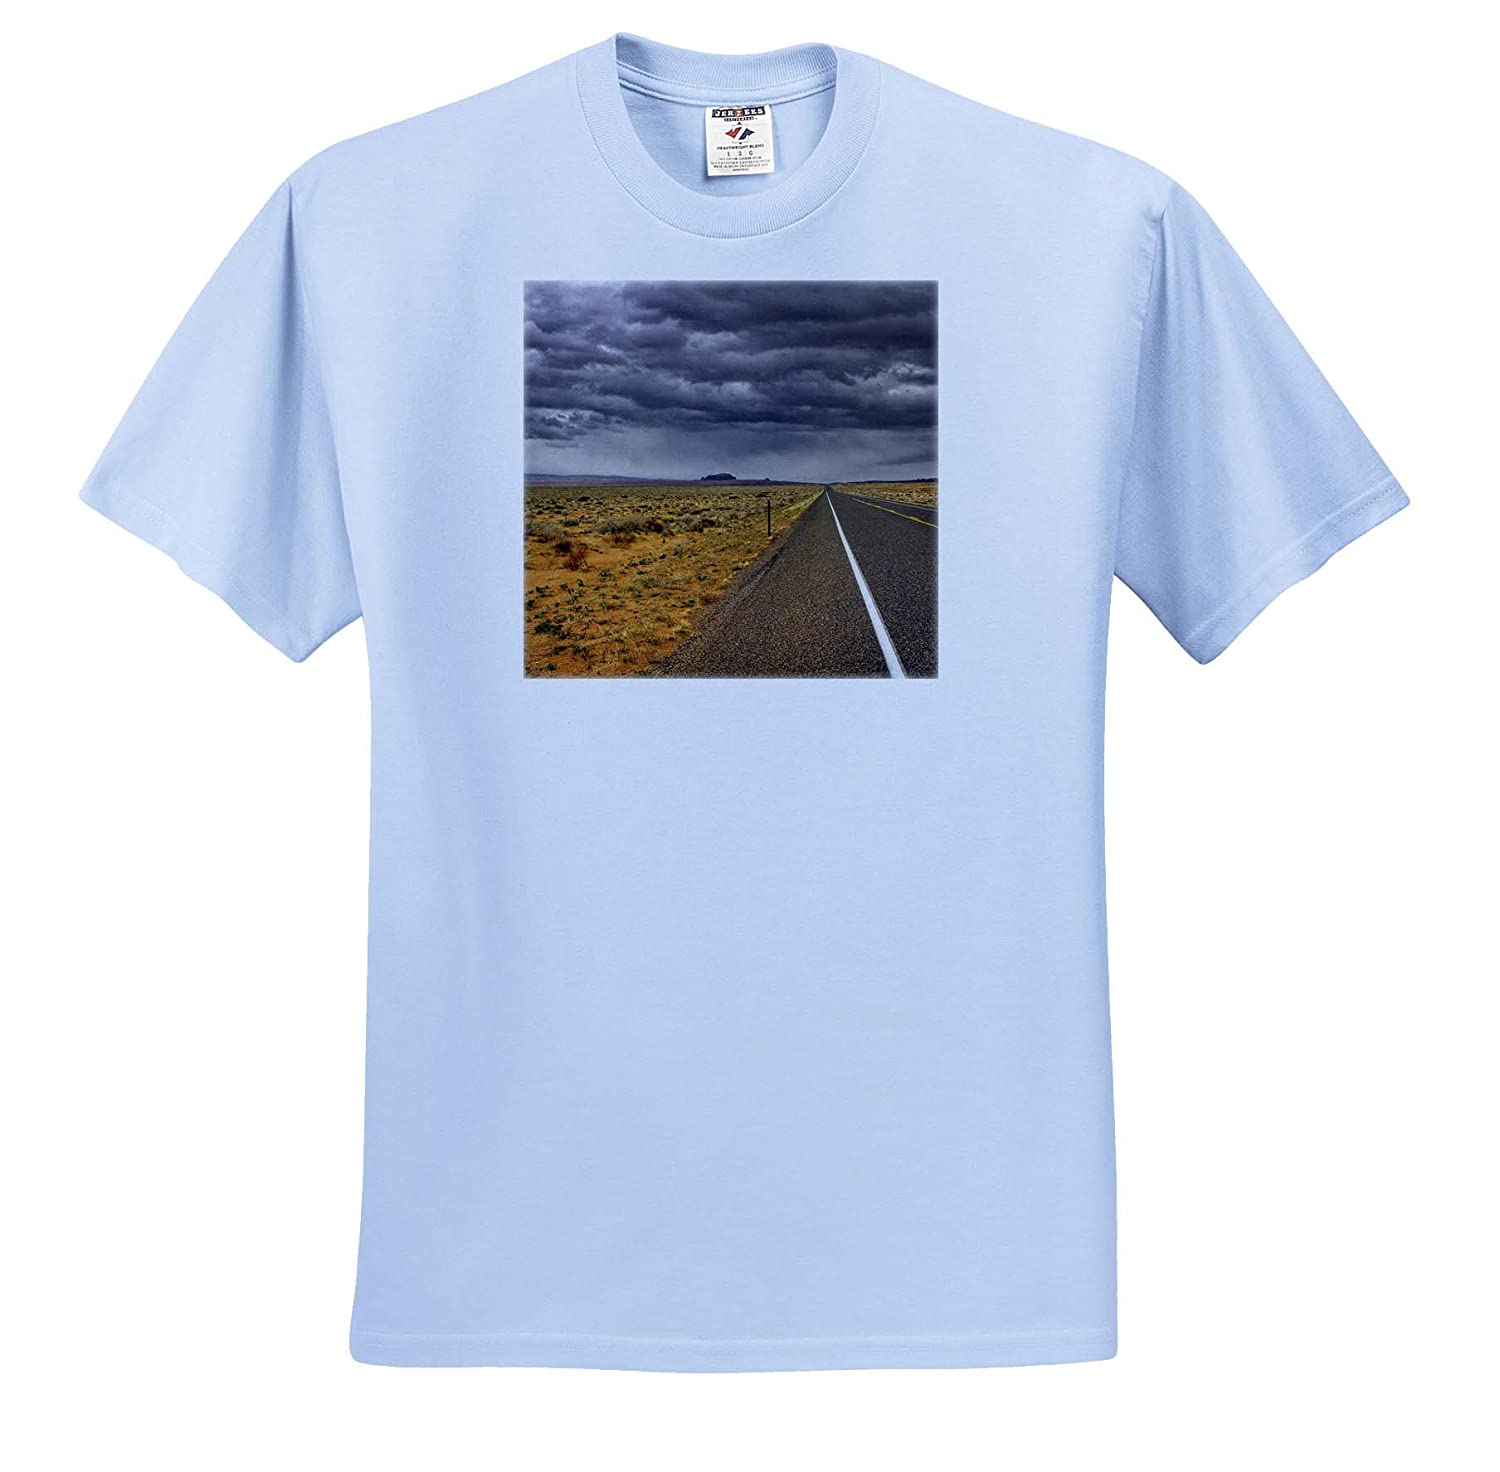 3dRose Mike Swindle Photography Scenery Storm on The Highway T-Shirts